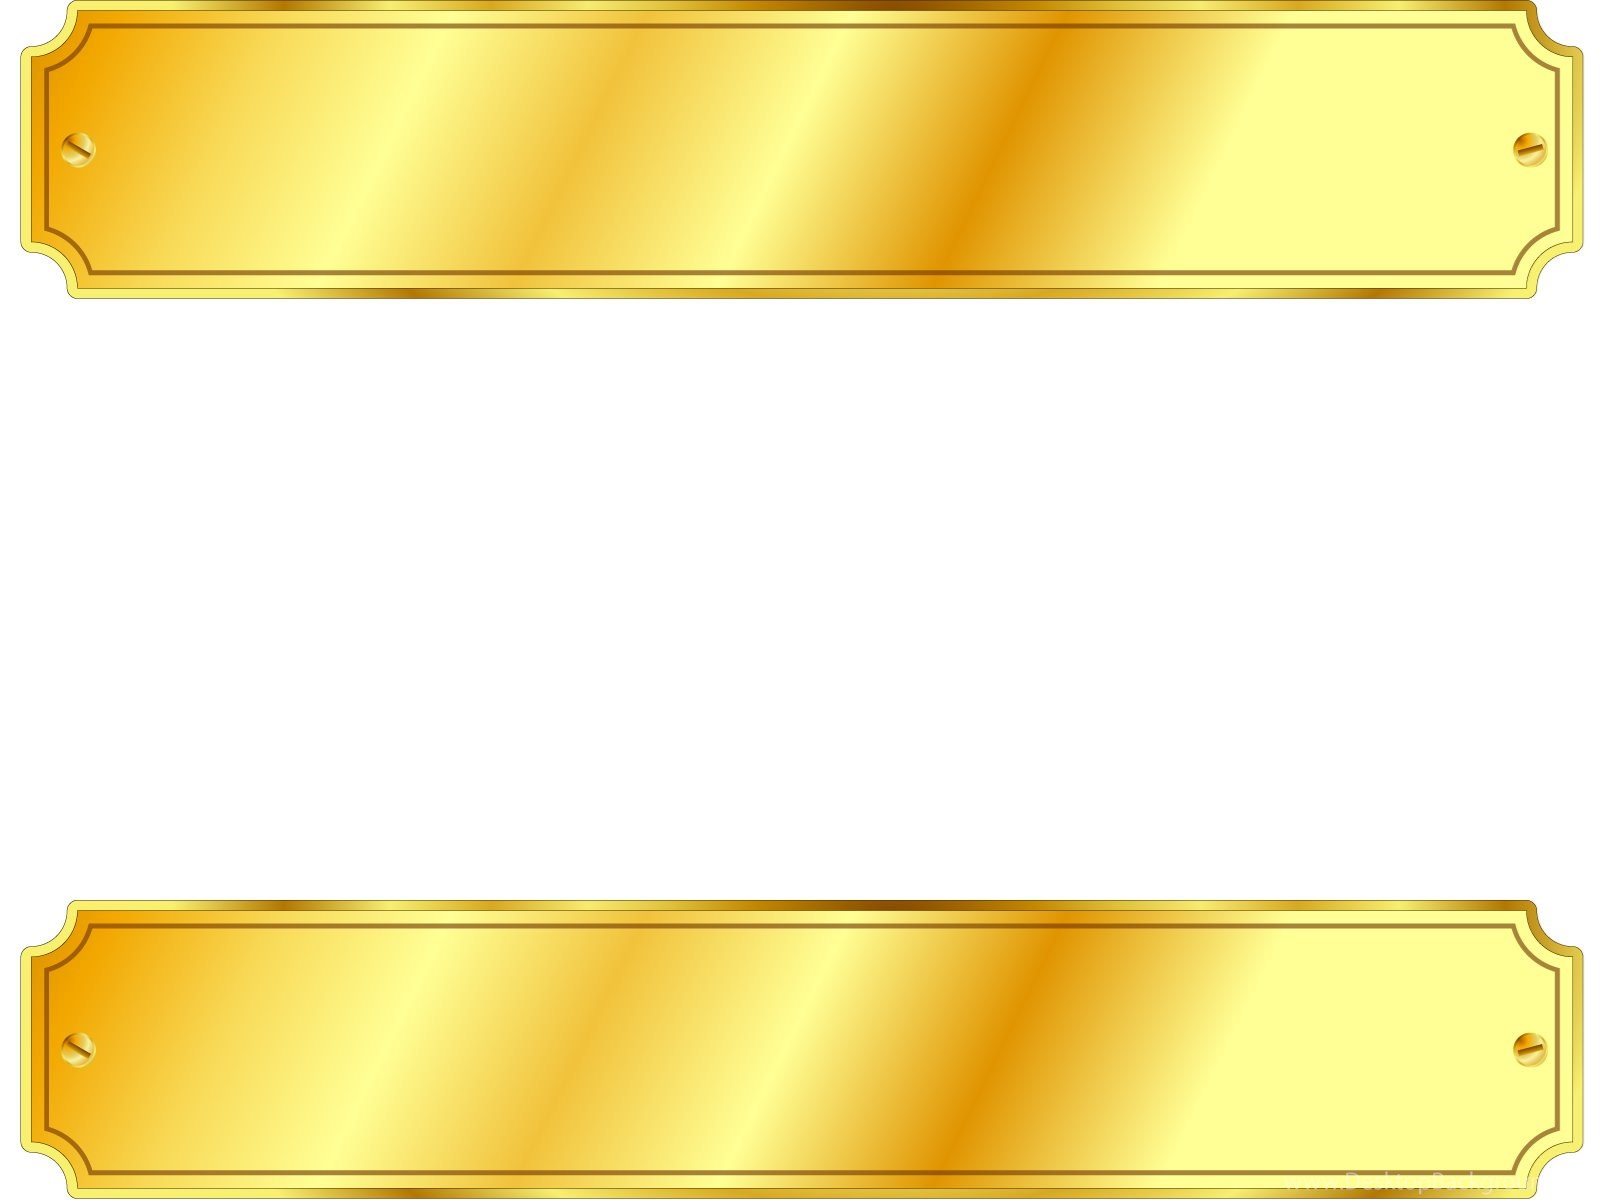 Gold Metal Sign Backgrounds 3D, Border & Frames, White